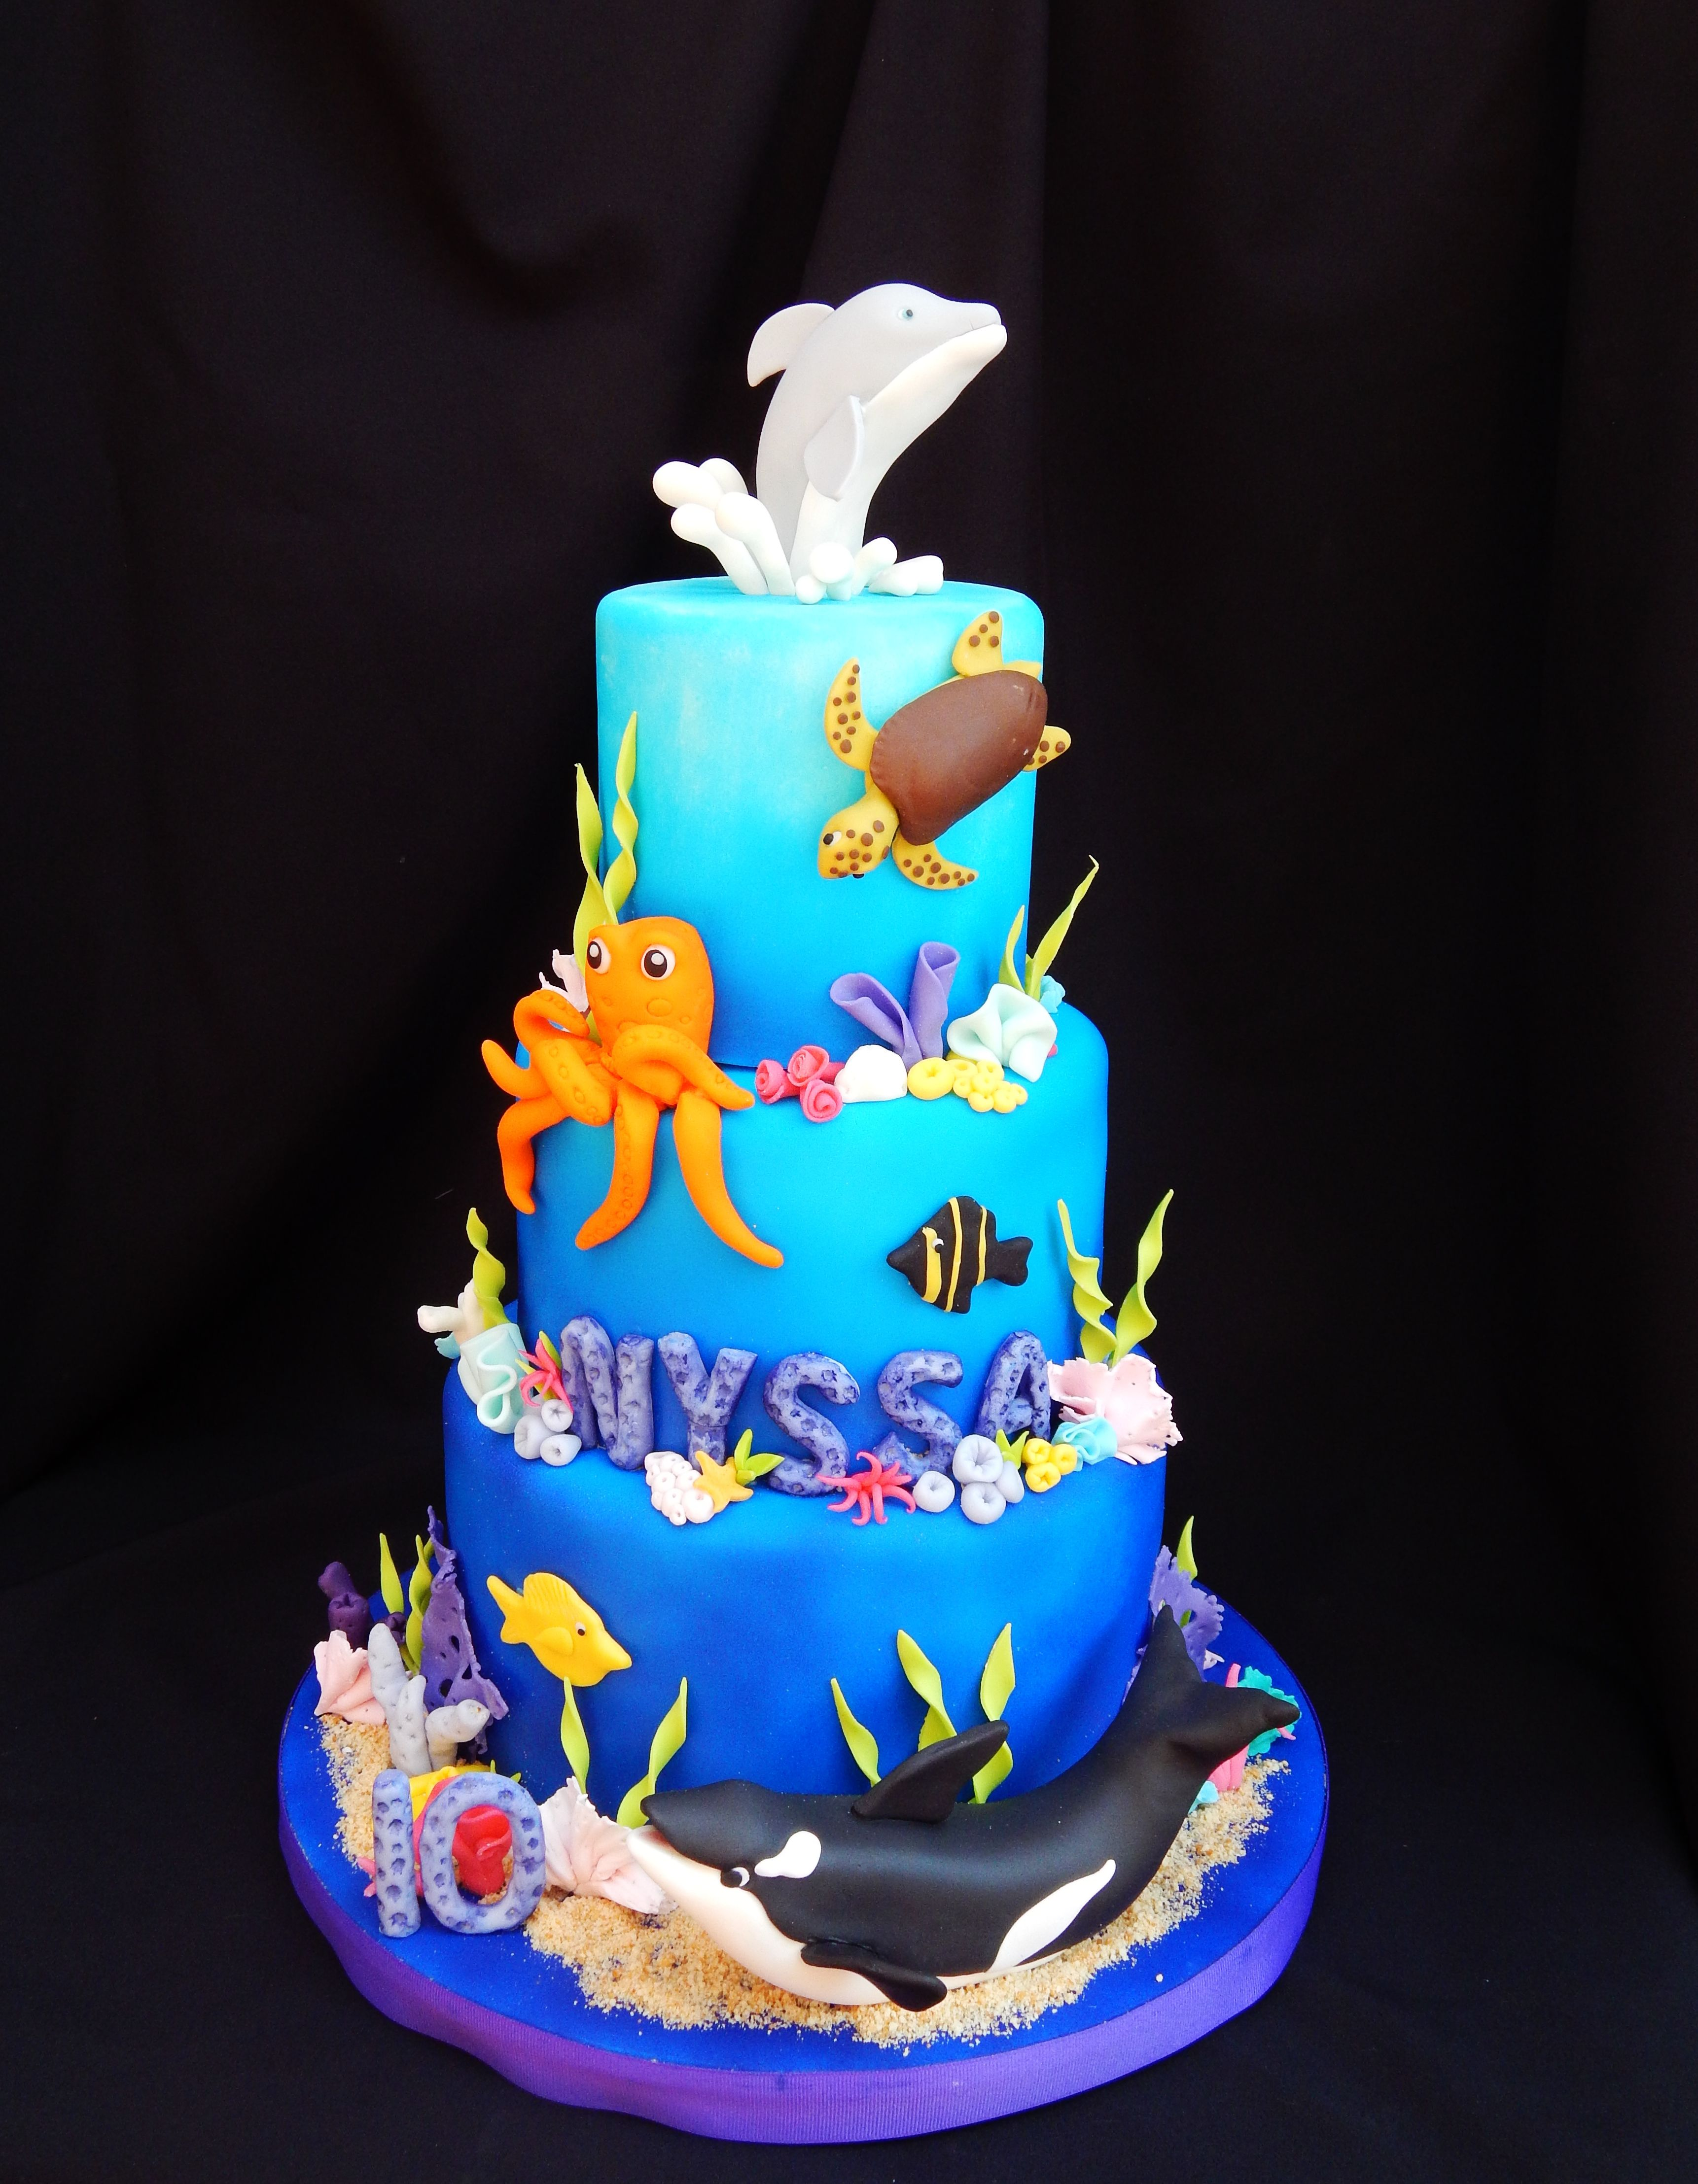 Ocean Cake 5 7 9 Airbrushed Fondant Dolphin Whale Turtle Fish Coral Under The Sea